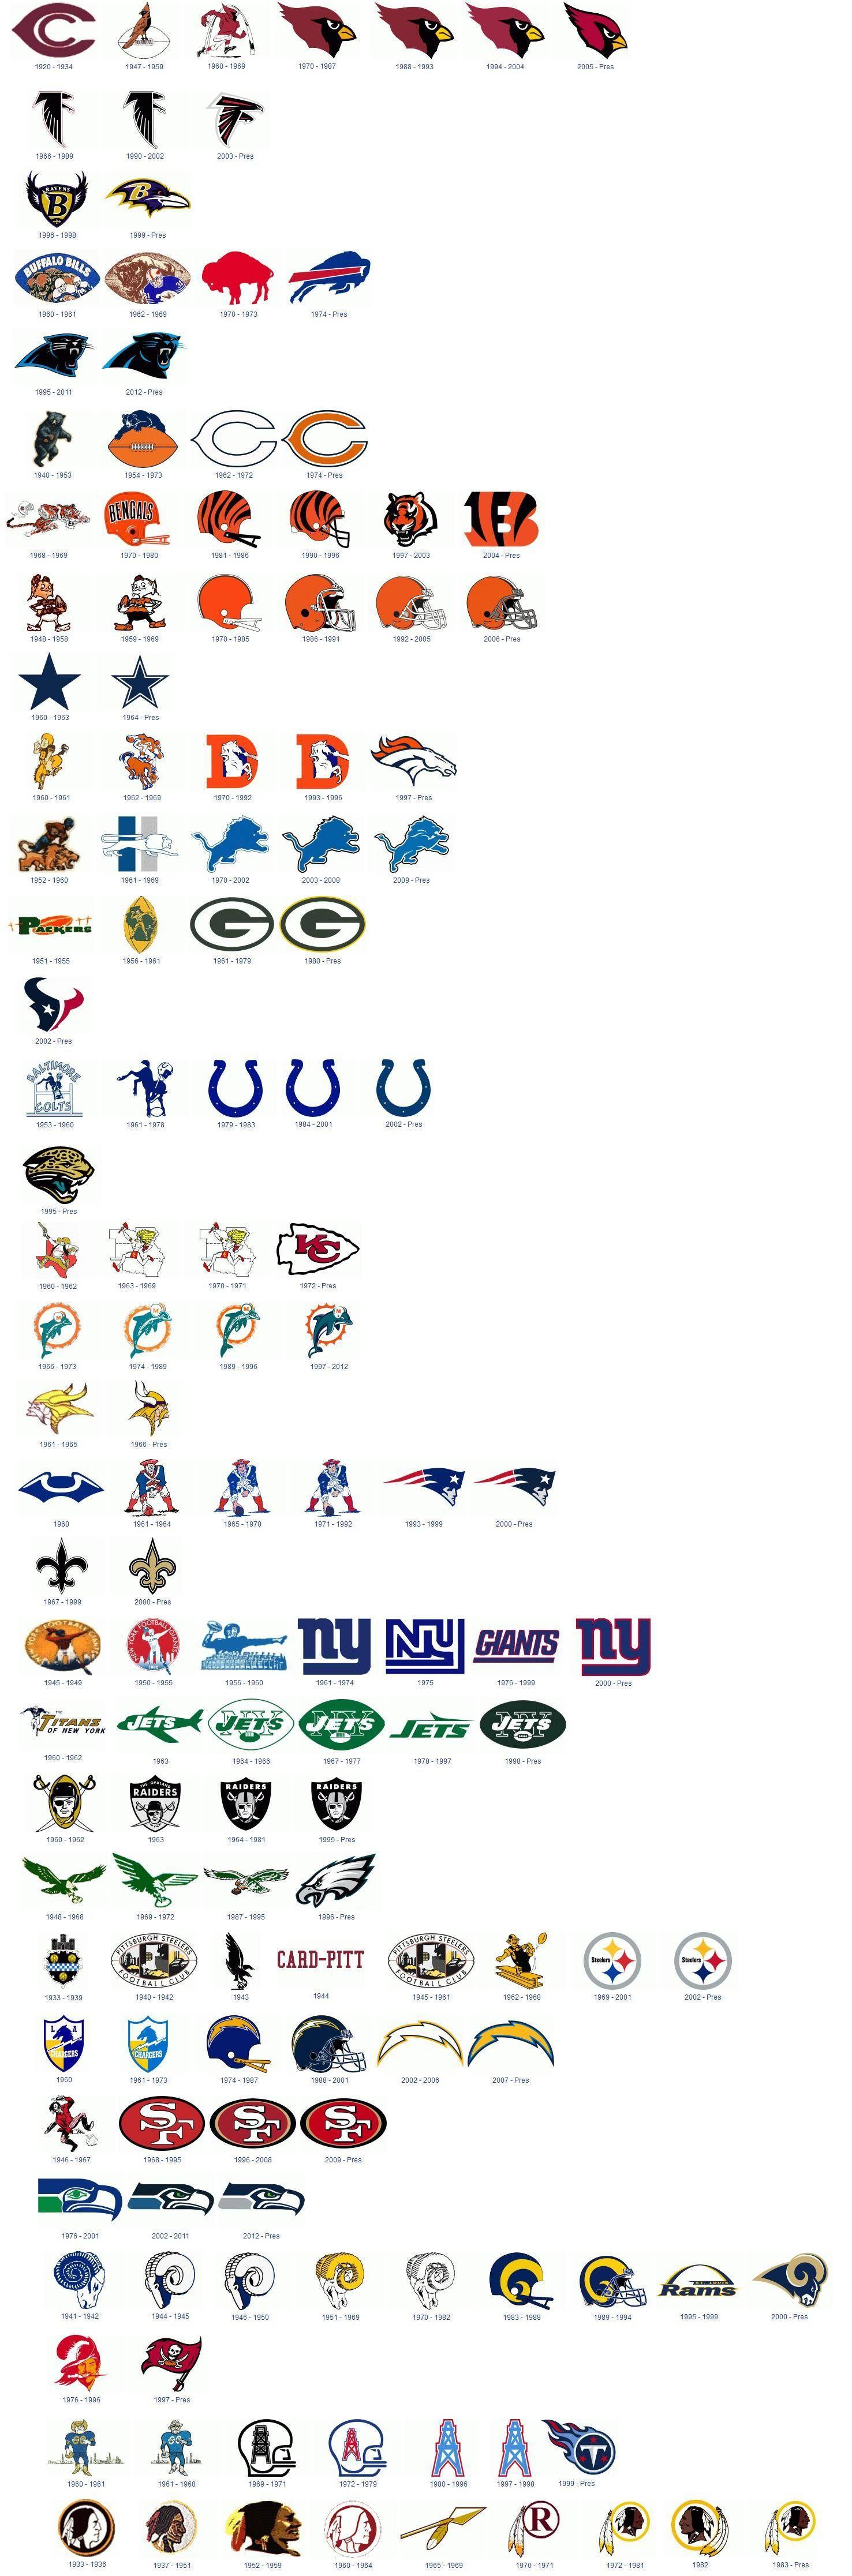 Infographic showing the past 40 years of nfl team logos